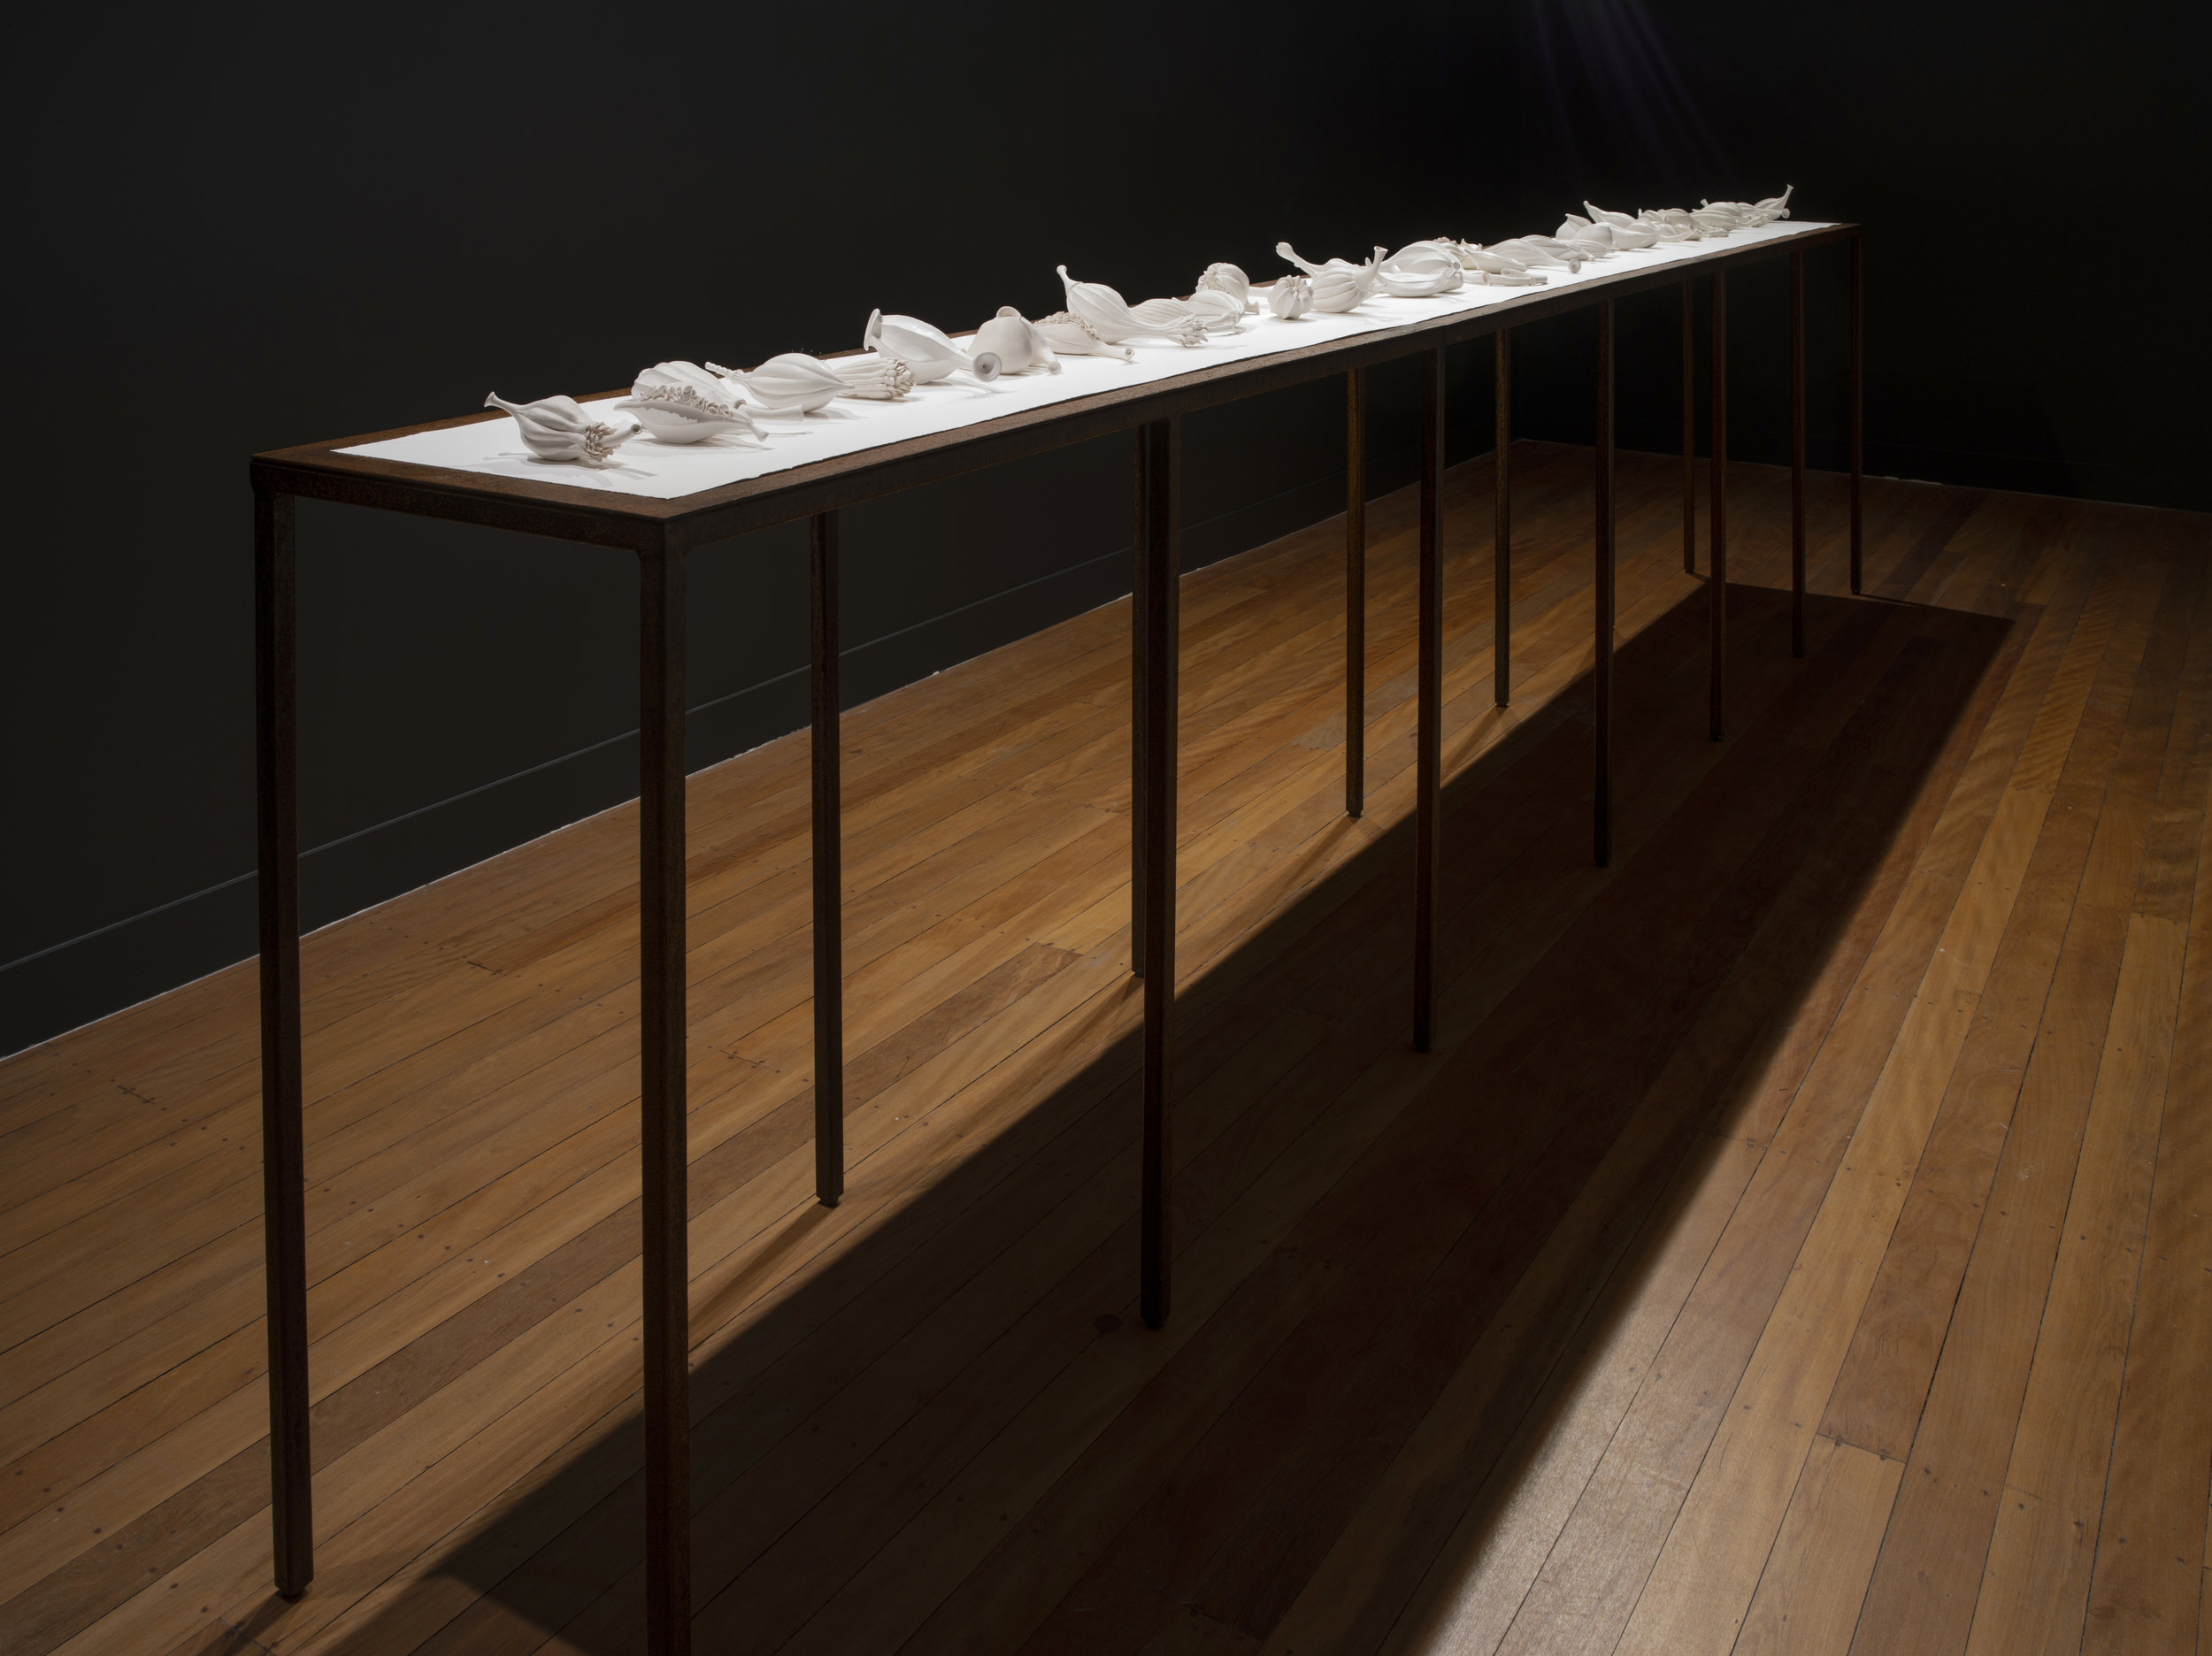 Sarah Rayner,  Flowerbones  installation at Onespace Gallery, 2018, 50 individual componenets (37 works), rusted steel tables, 4350mm x 470mm x 950mm with cotton rag paper base. Photo: Carl Warner.